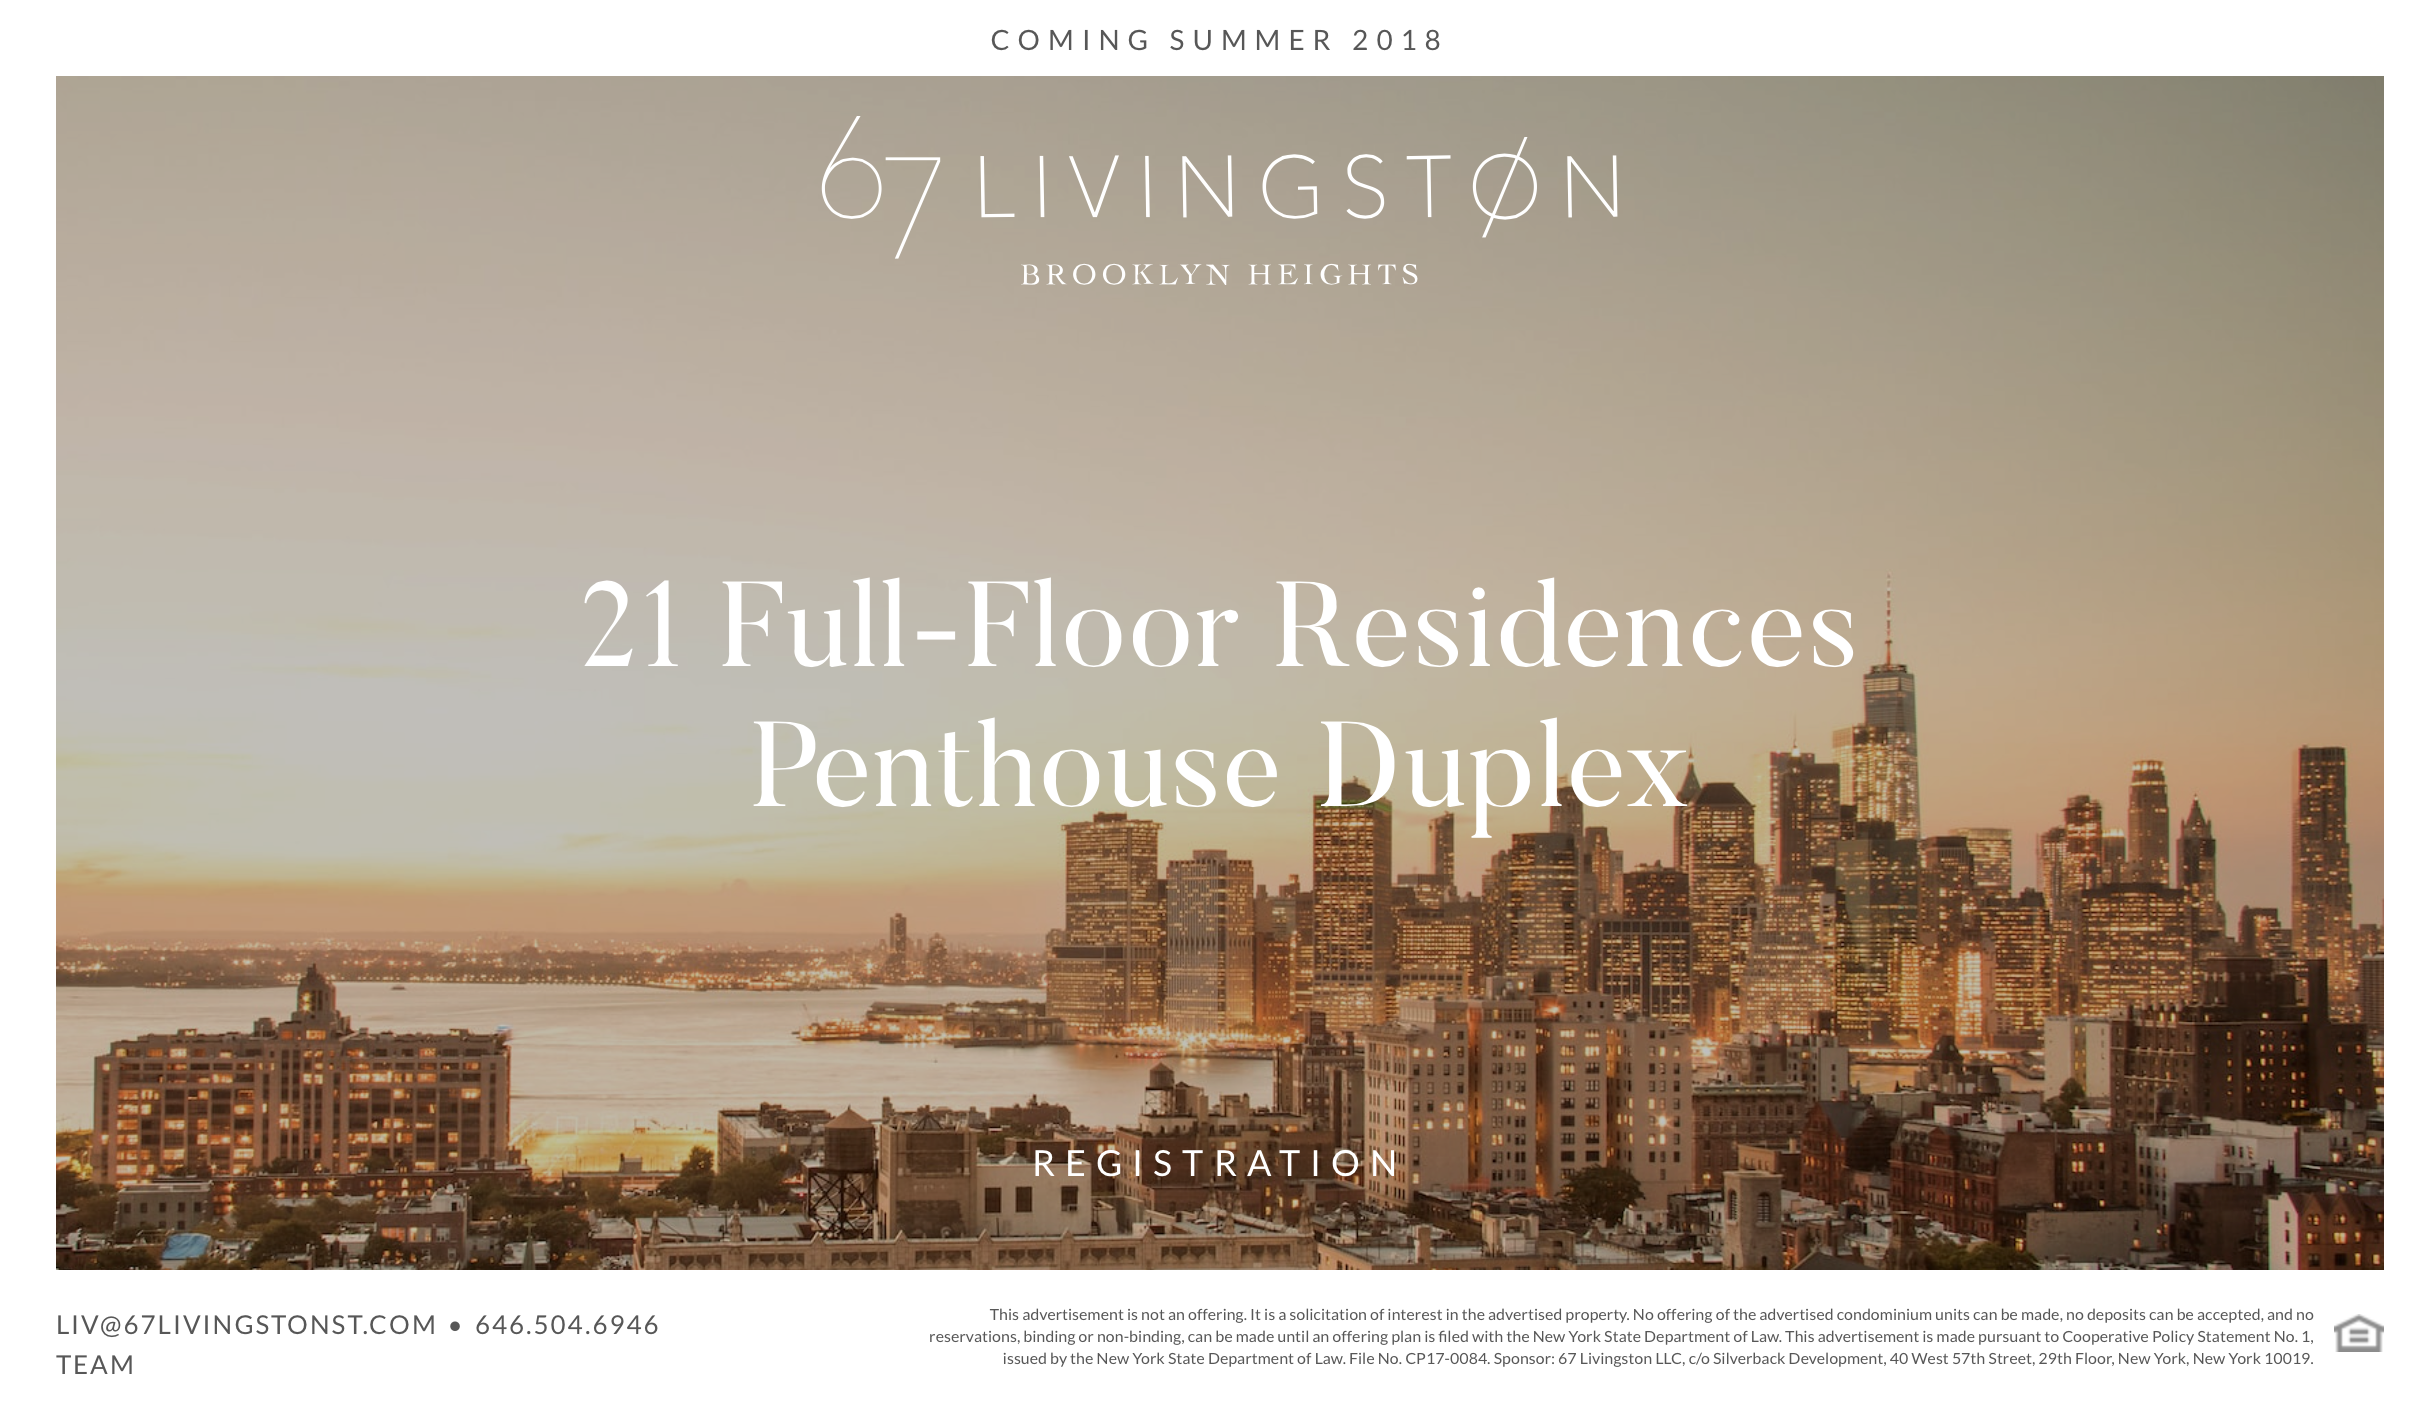 Silverback Development Launches Teaser Website For 67 Livingston in Brooklyn Heights